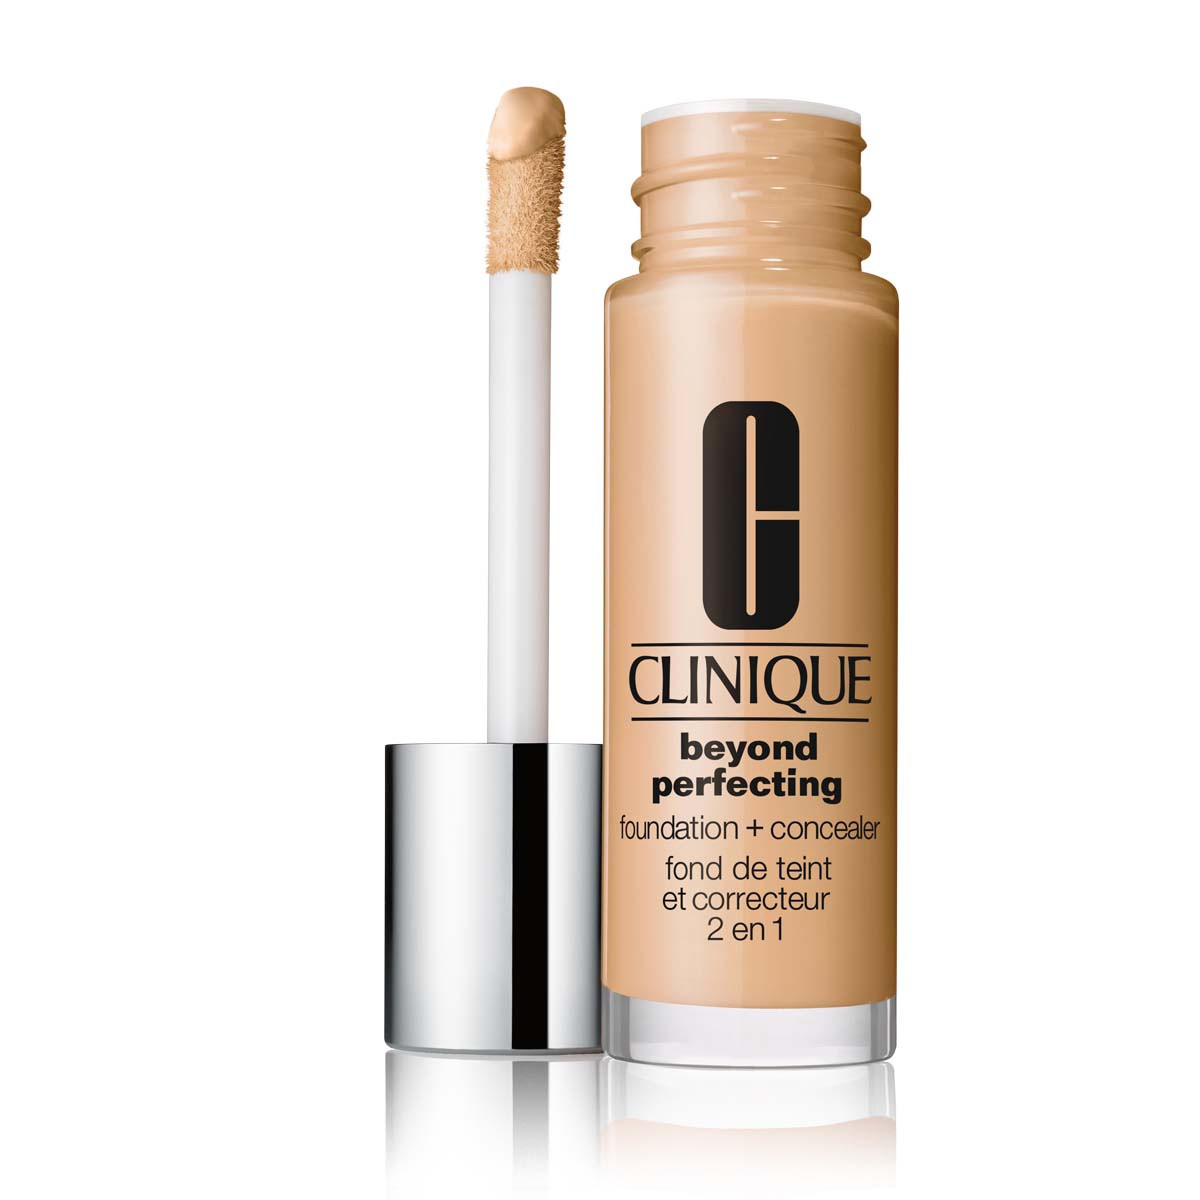 Clinique beyond perfecting foundation - cn 08 linen  30 ml, CN 08 LINEN, large image number 0